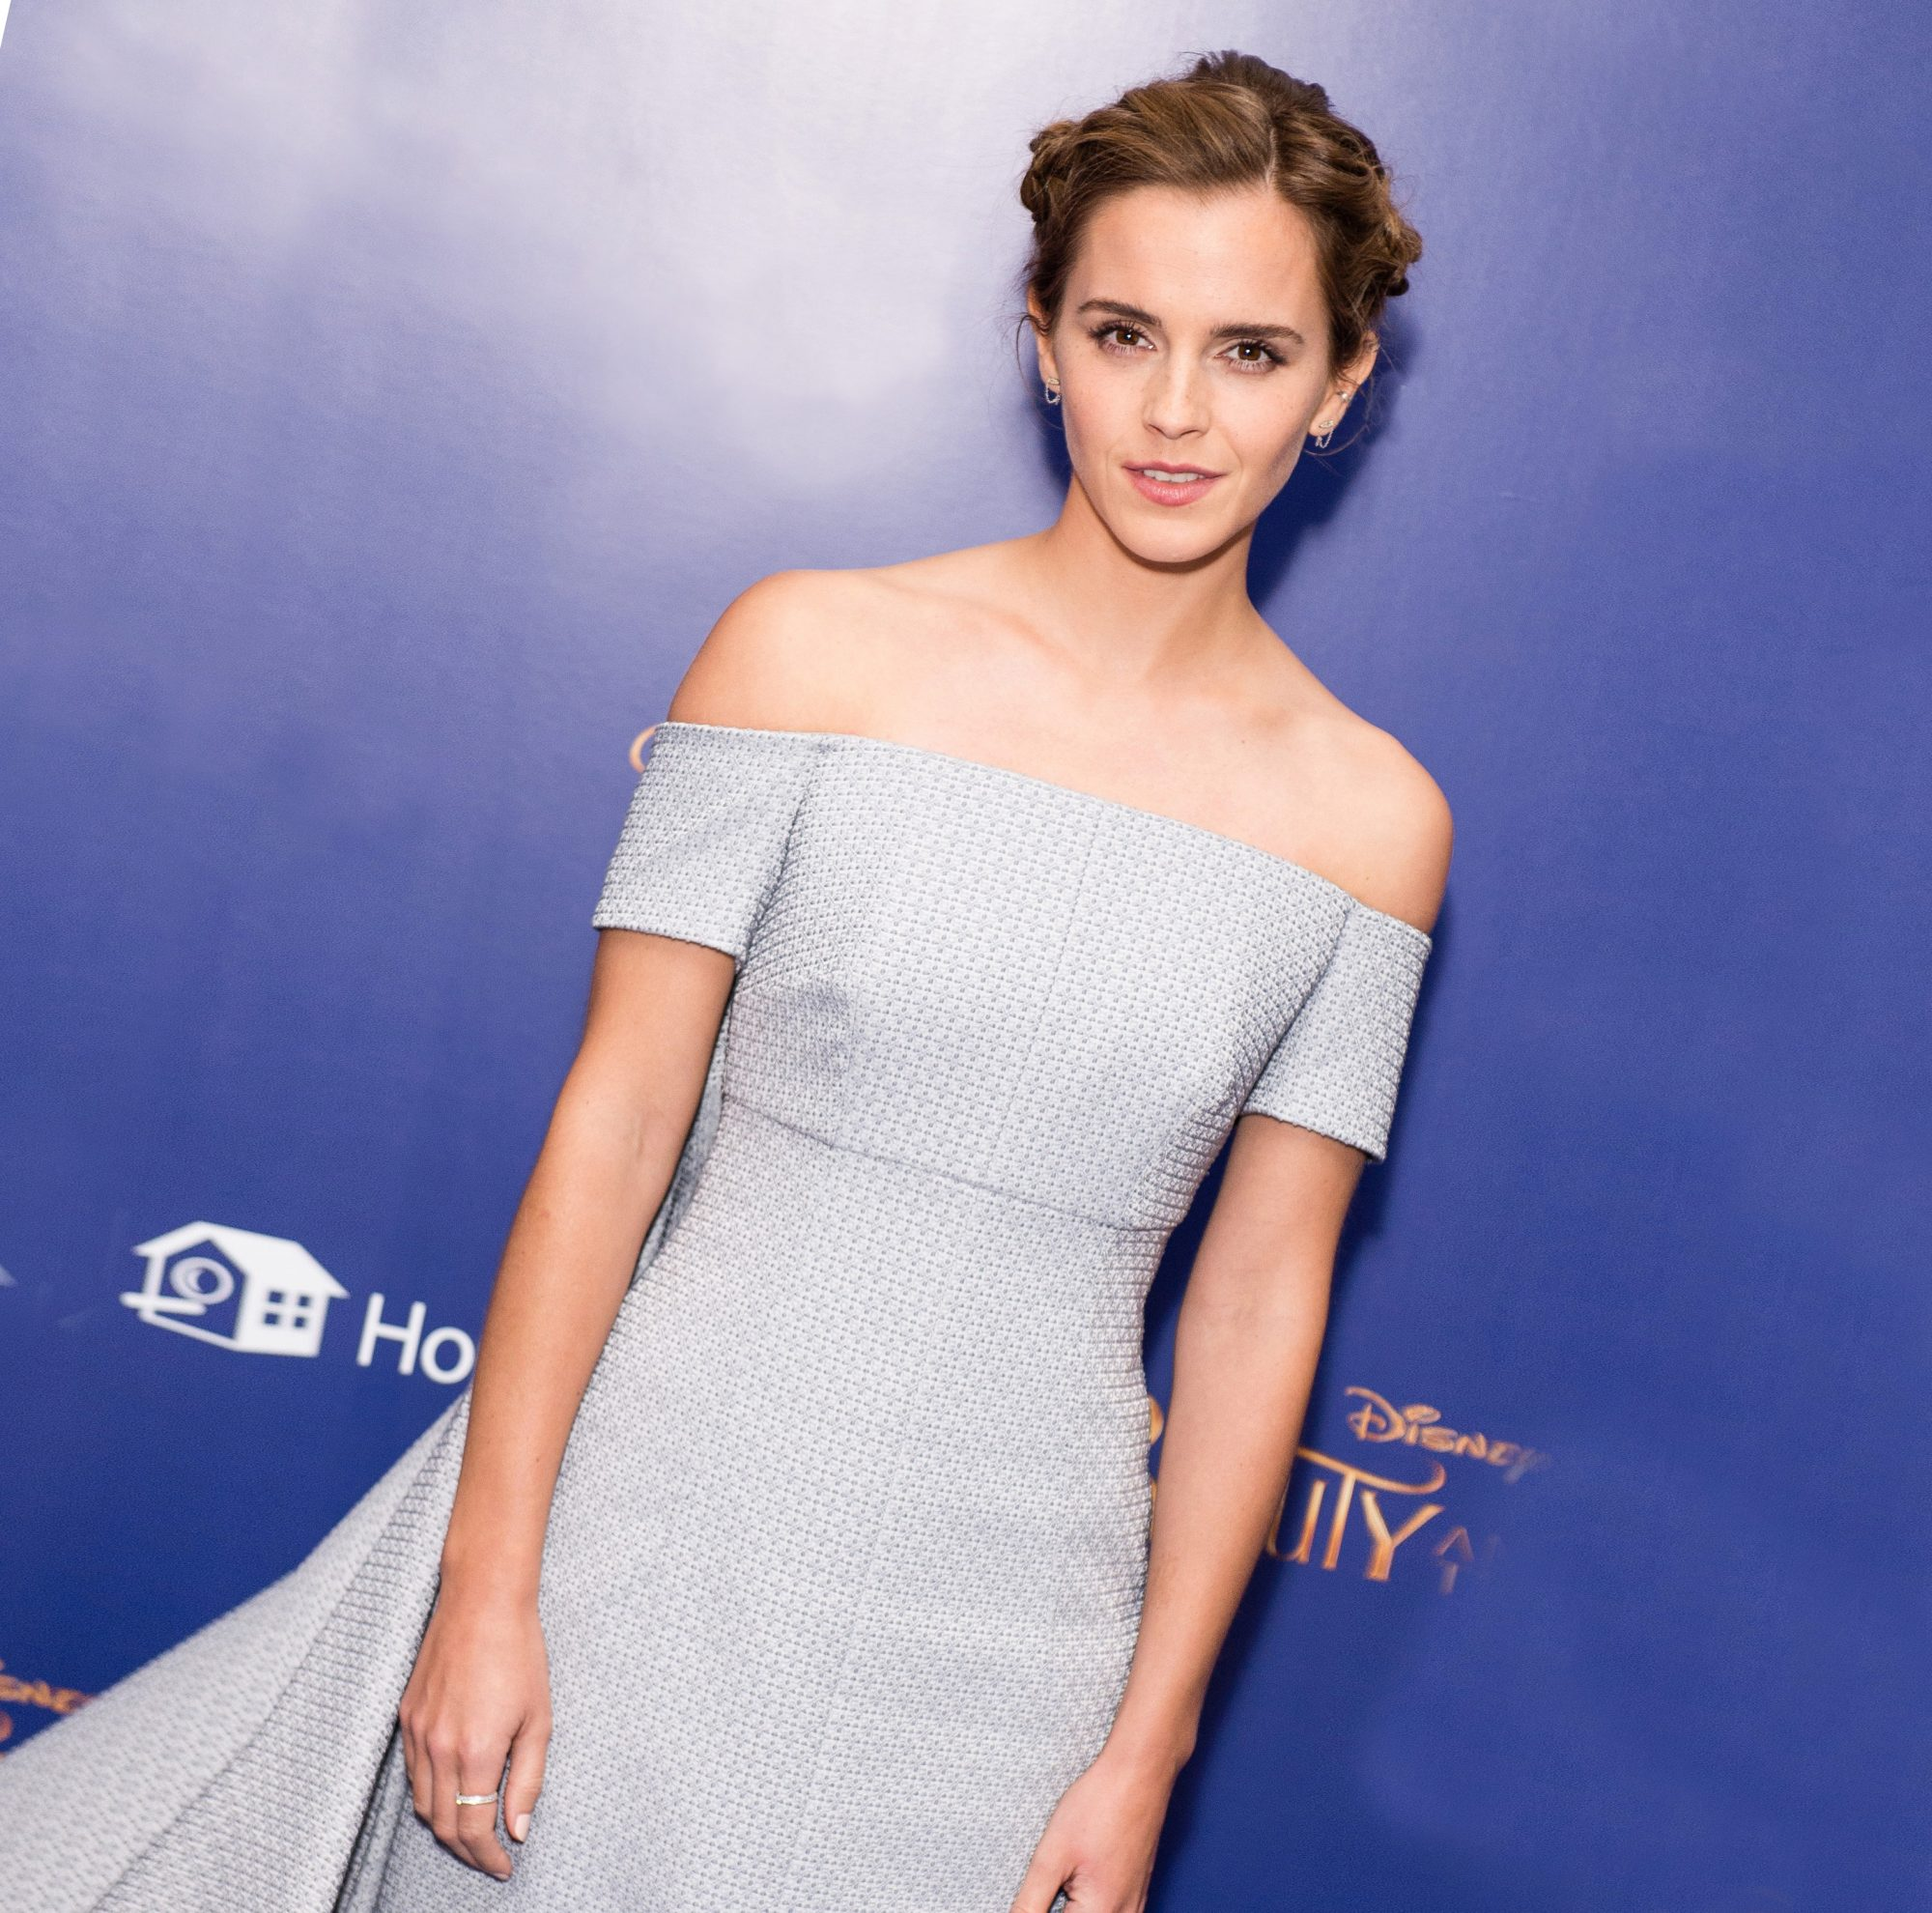 7 Beauty Confessions from Emma Watson (like She Uses Oil on Her Pubic Hair)